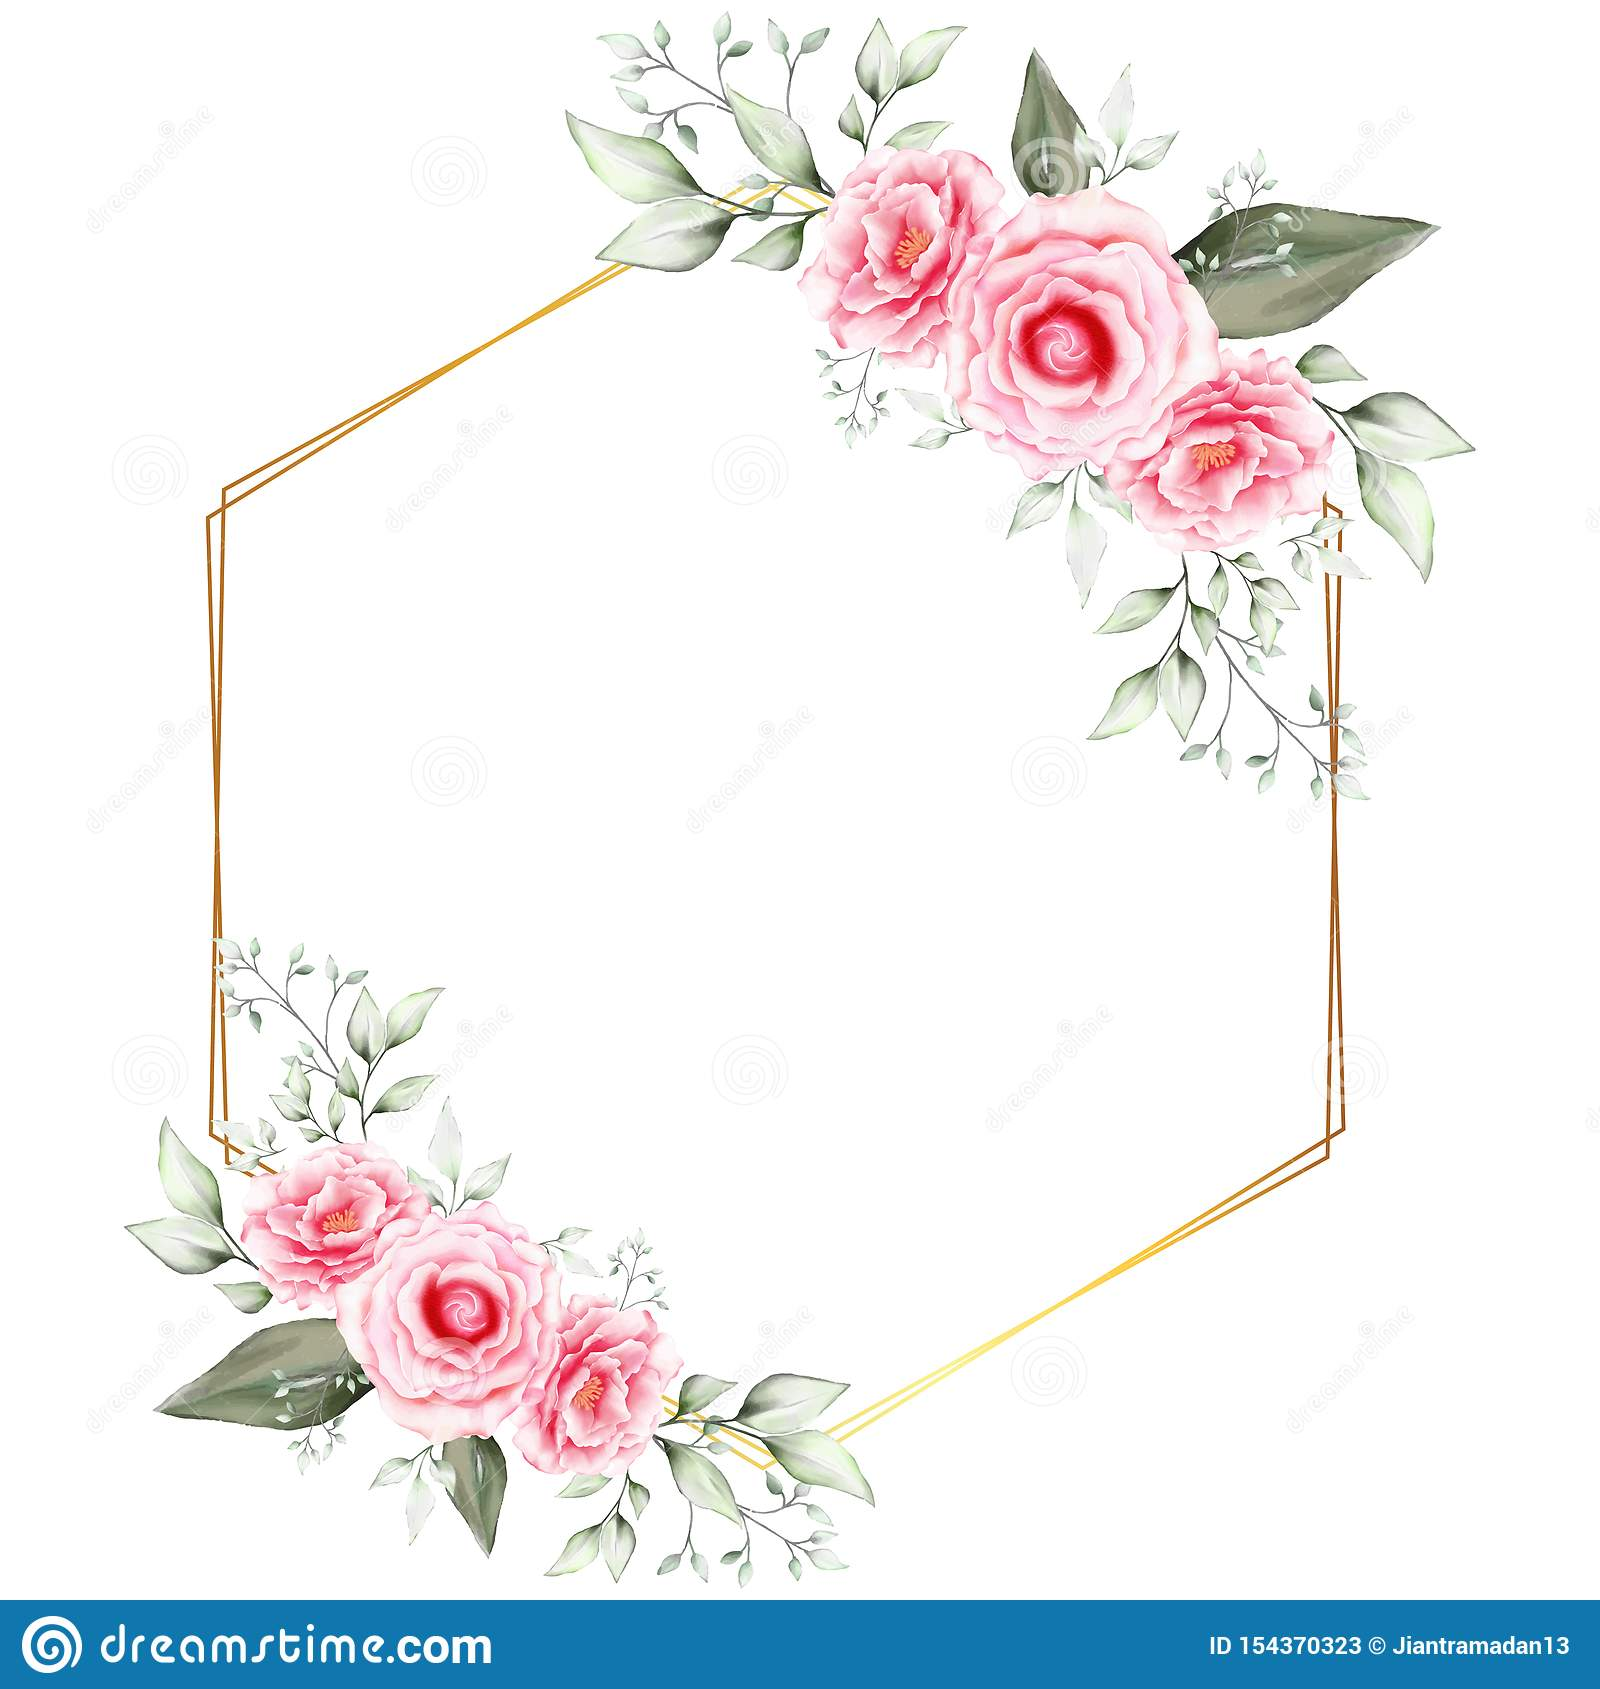 watercolor floral frame wedding invitation cards template with geometric golden frame hand drawing flower and branches save the stock vector illustration of golden elegant 154370323 https www dreamstime com watercolor floral frame wedding invitation cards template geometric golden hand drawing flower branches save date image154370323